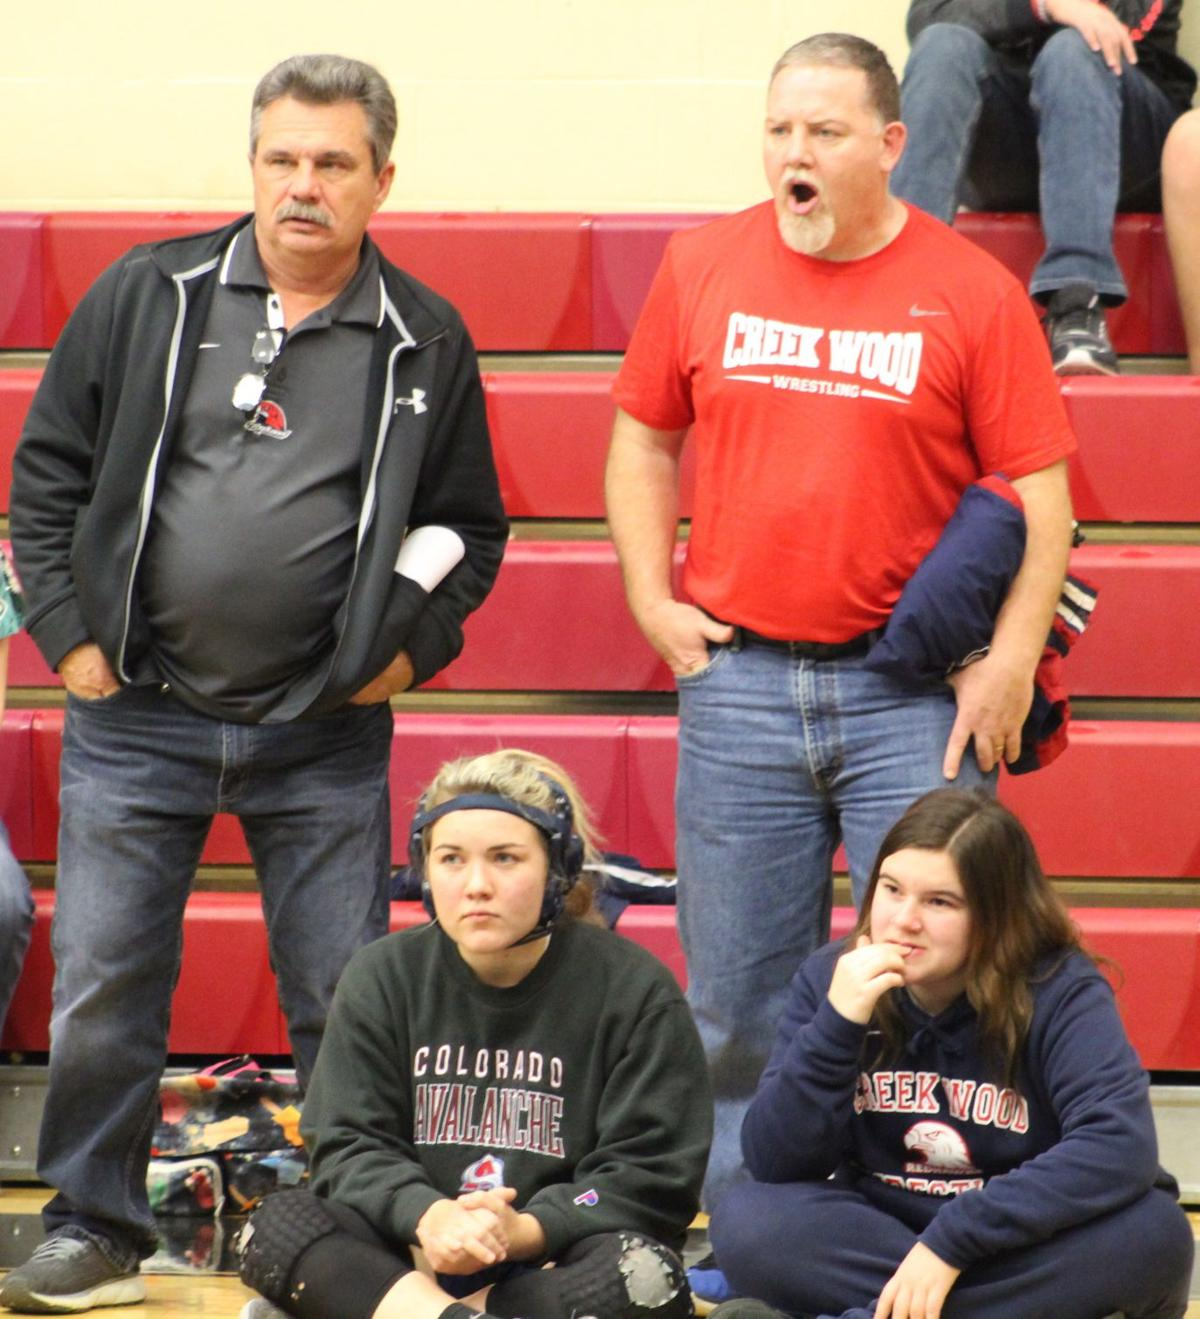 The Creek Wood wrestling coaches and few members of the team look on during a match.JPG